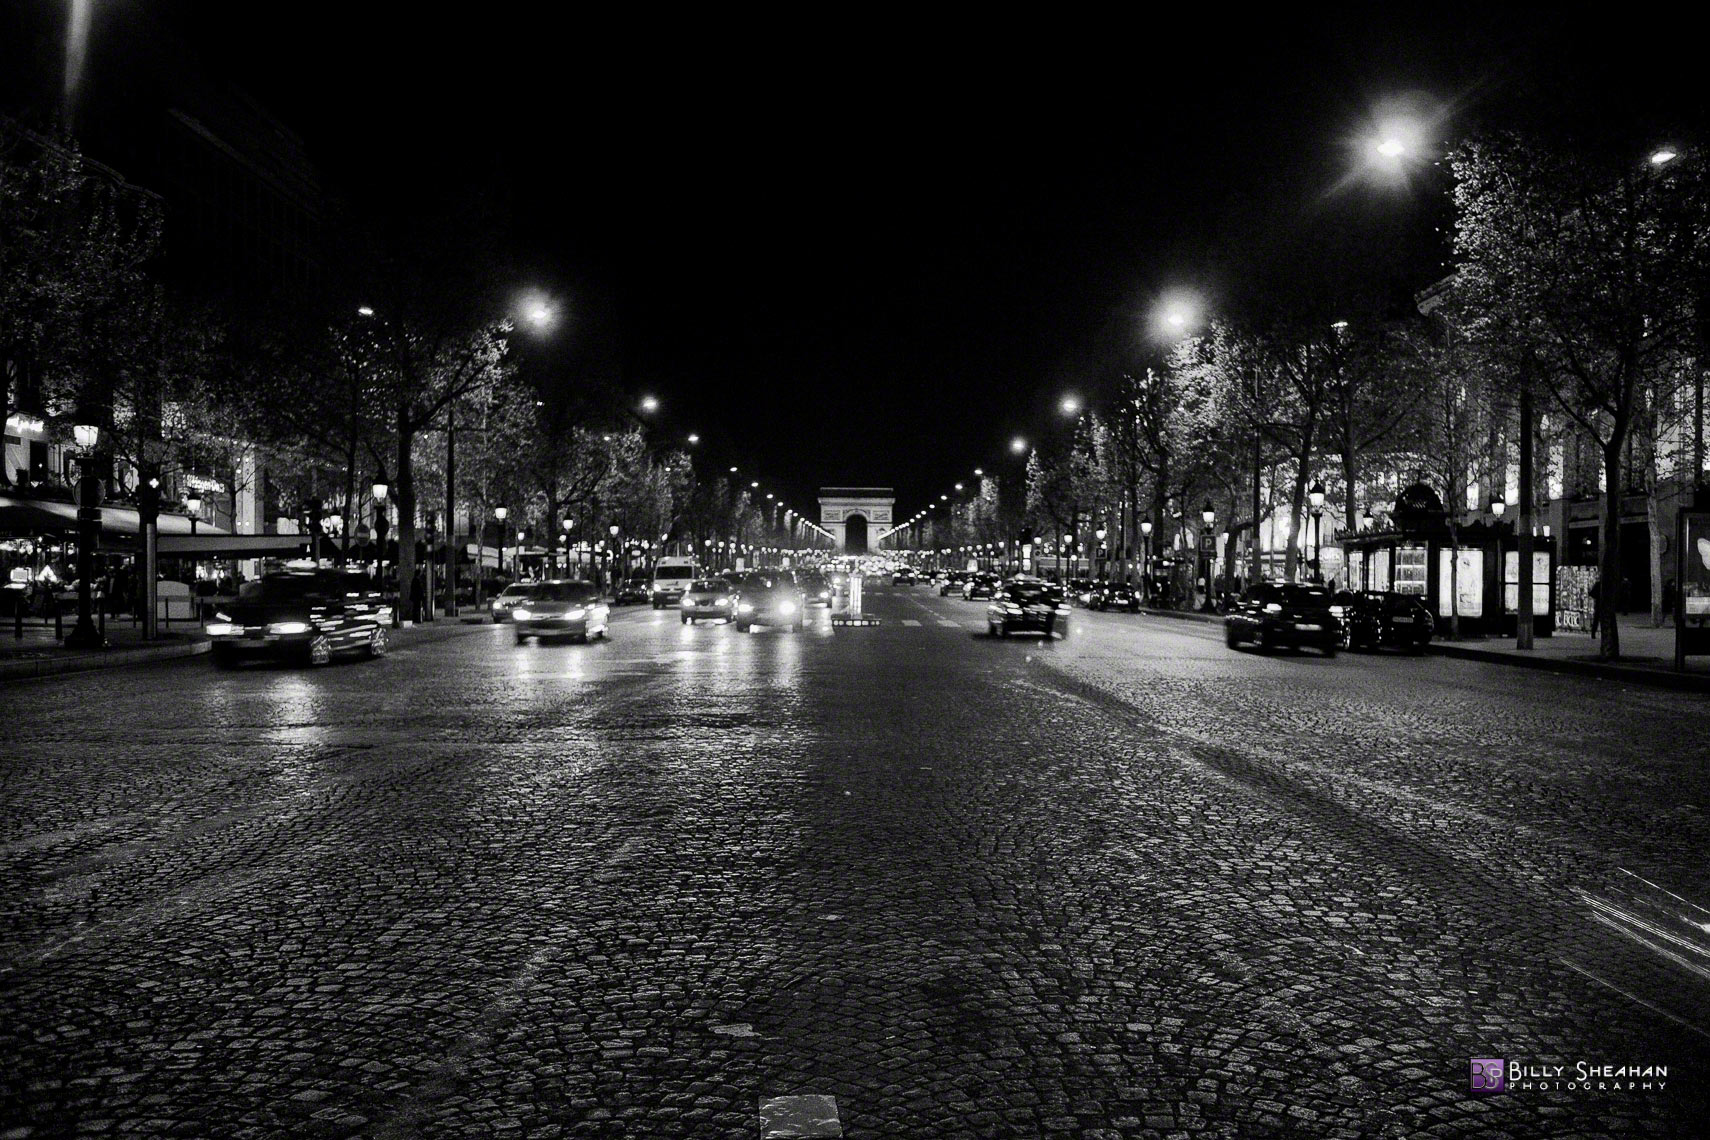 Avenue_des_Champs_Elysees__Paris__France_Paris2008_24Apr2008_0565_BW_D